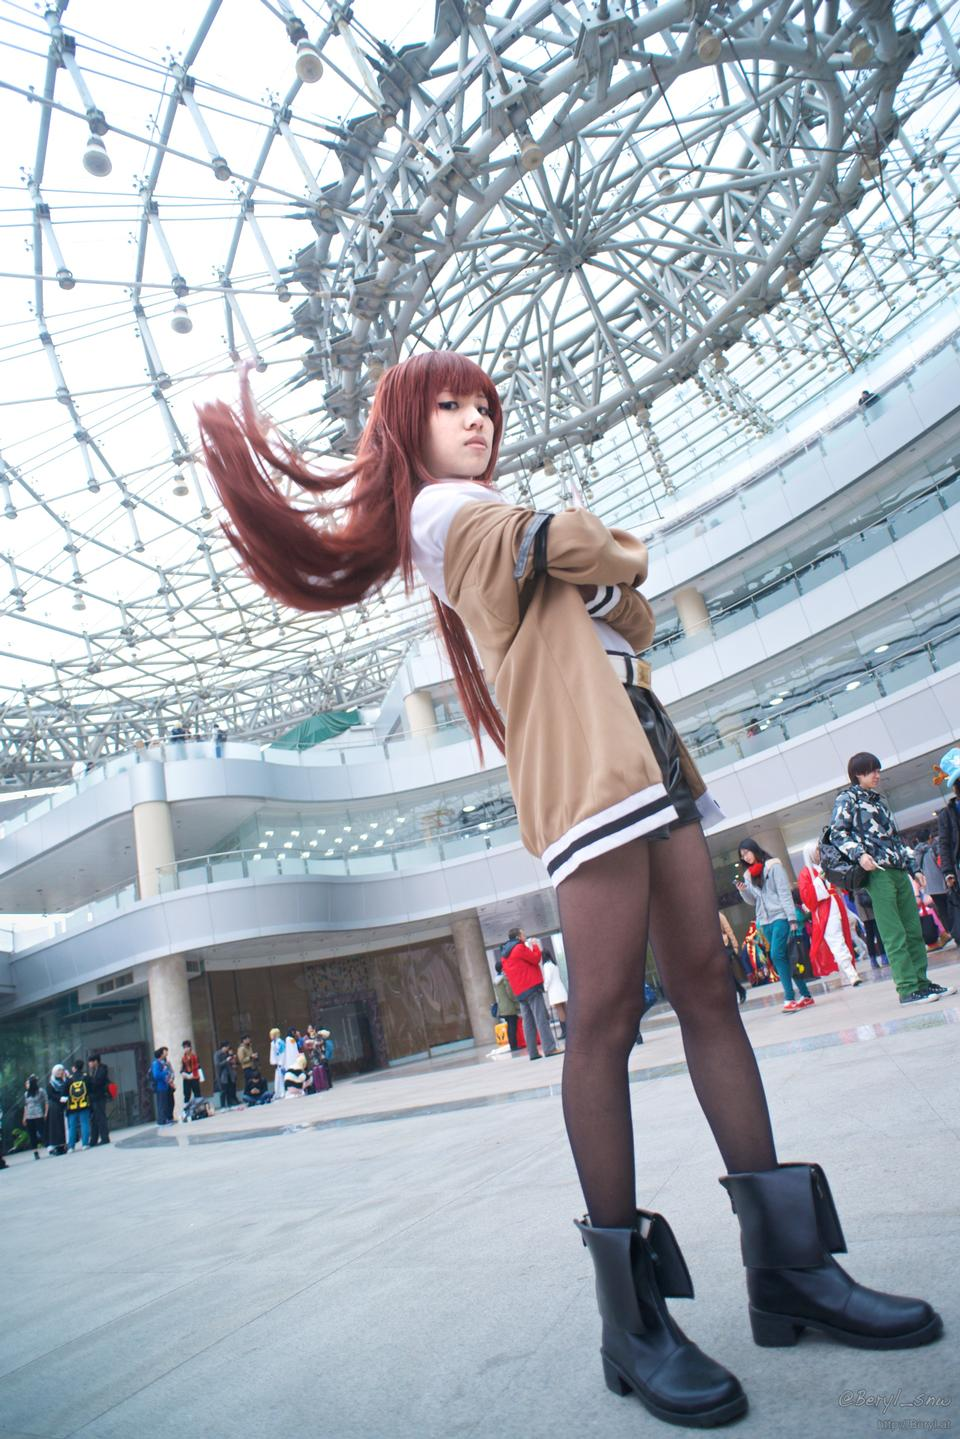 Lifestyle fashion portrait,people in cosplay costume